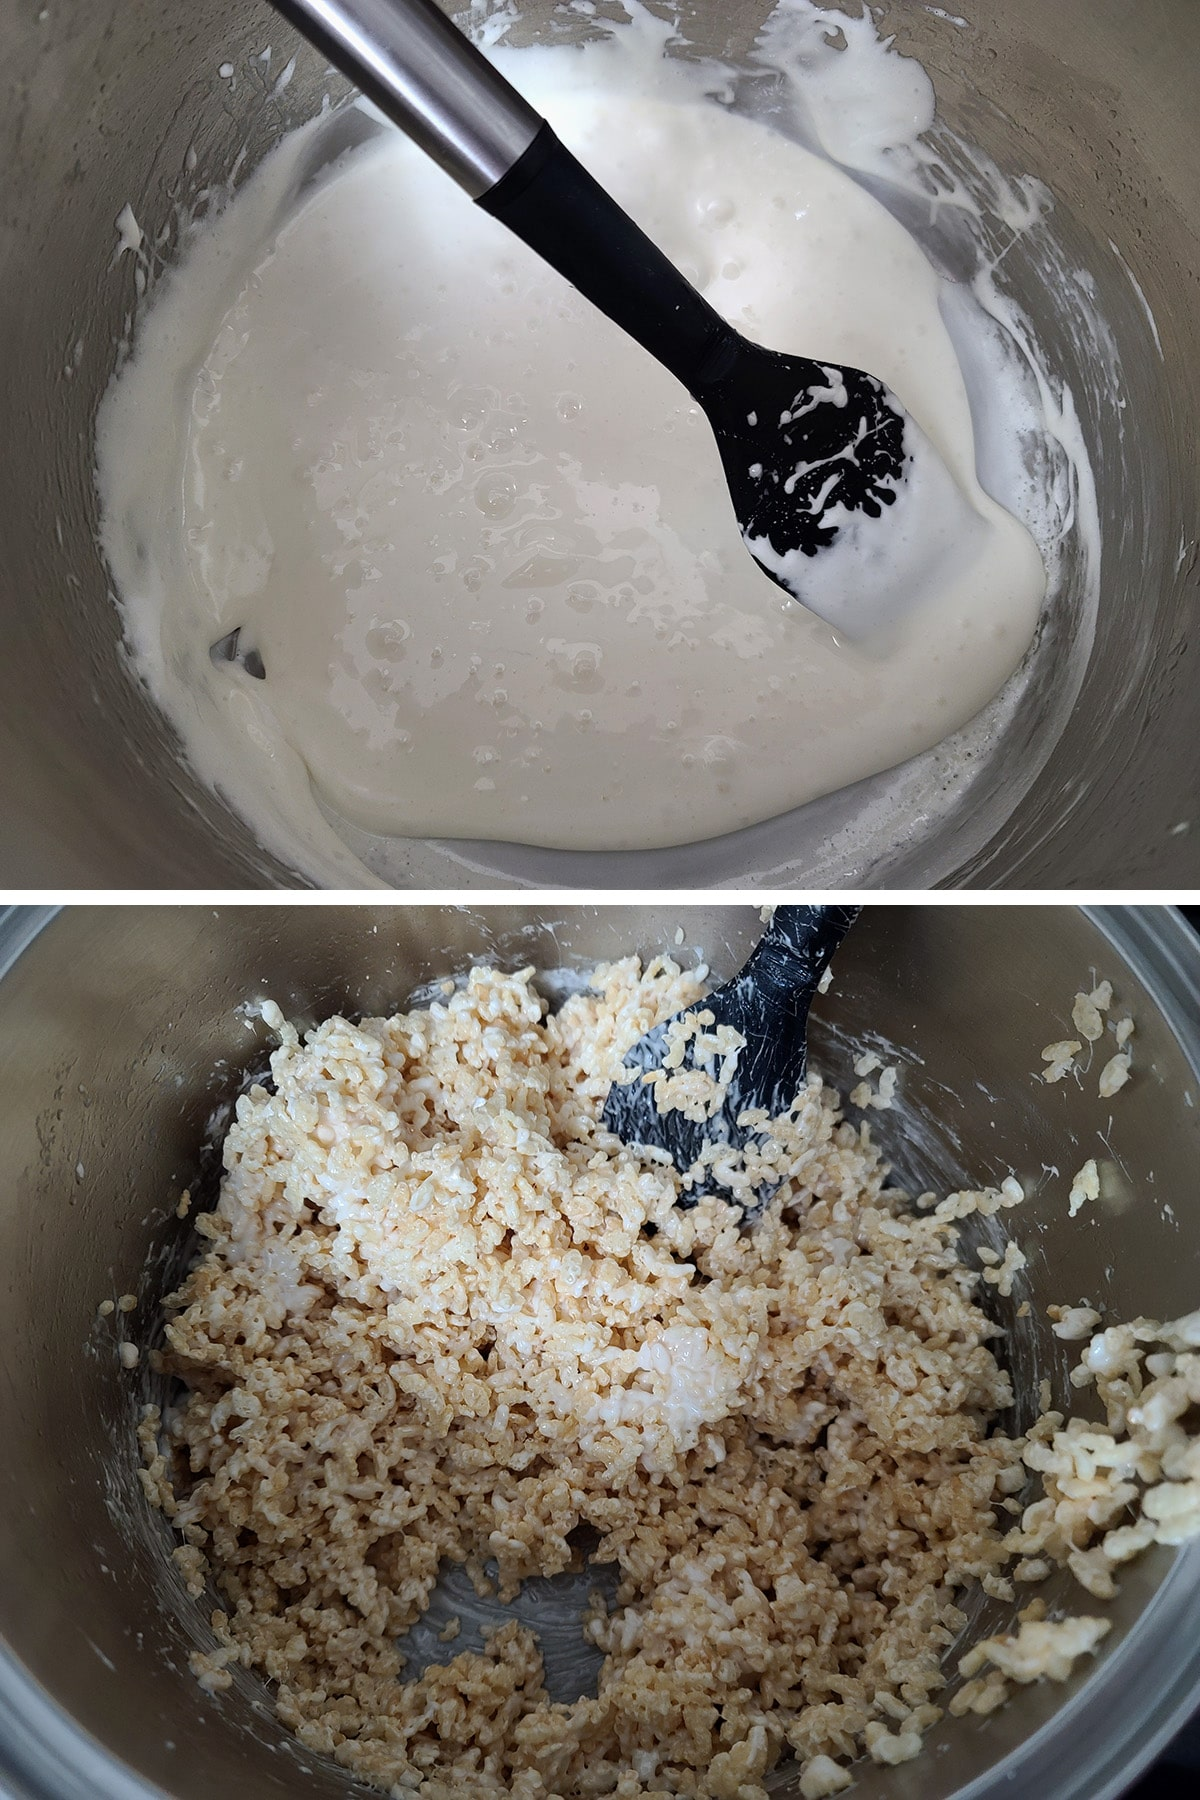 A two part compilation image showing melted marshmallows in a pot, then rice crispies added.